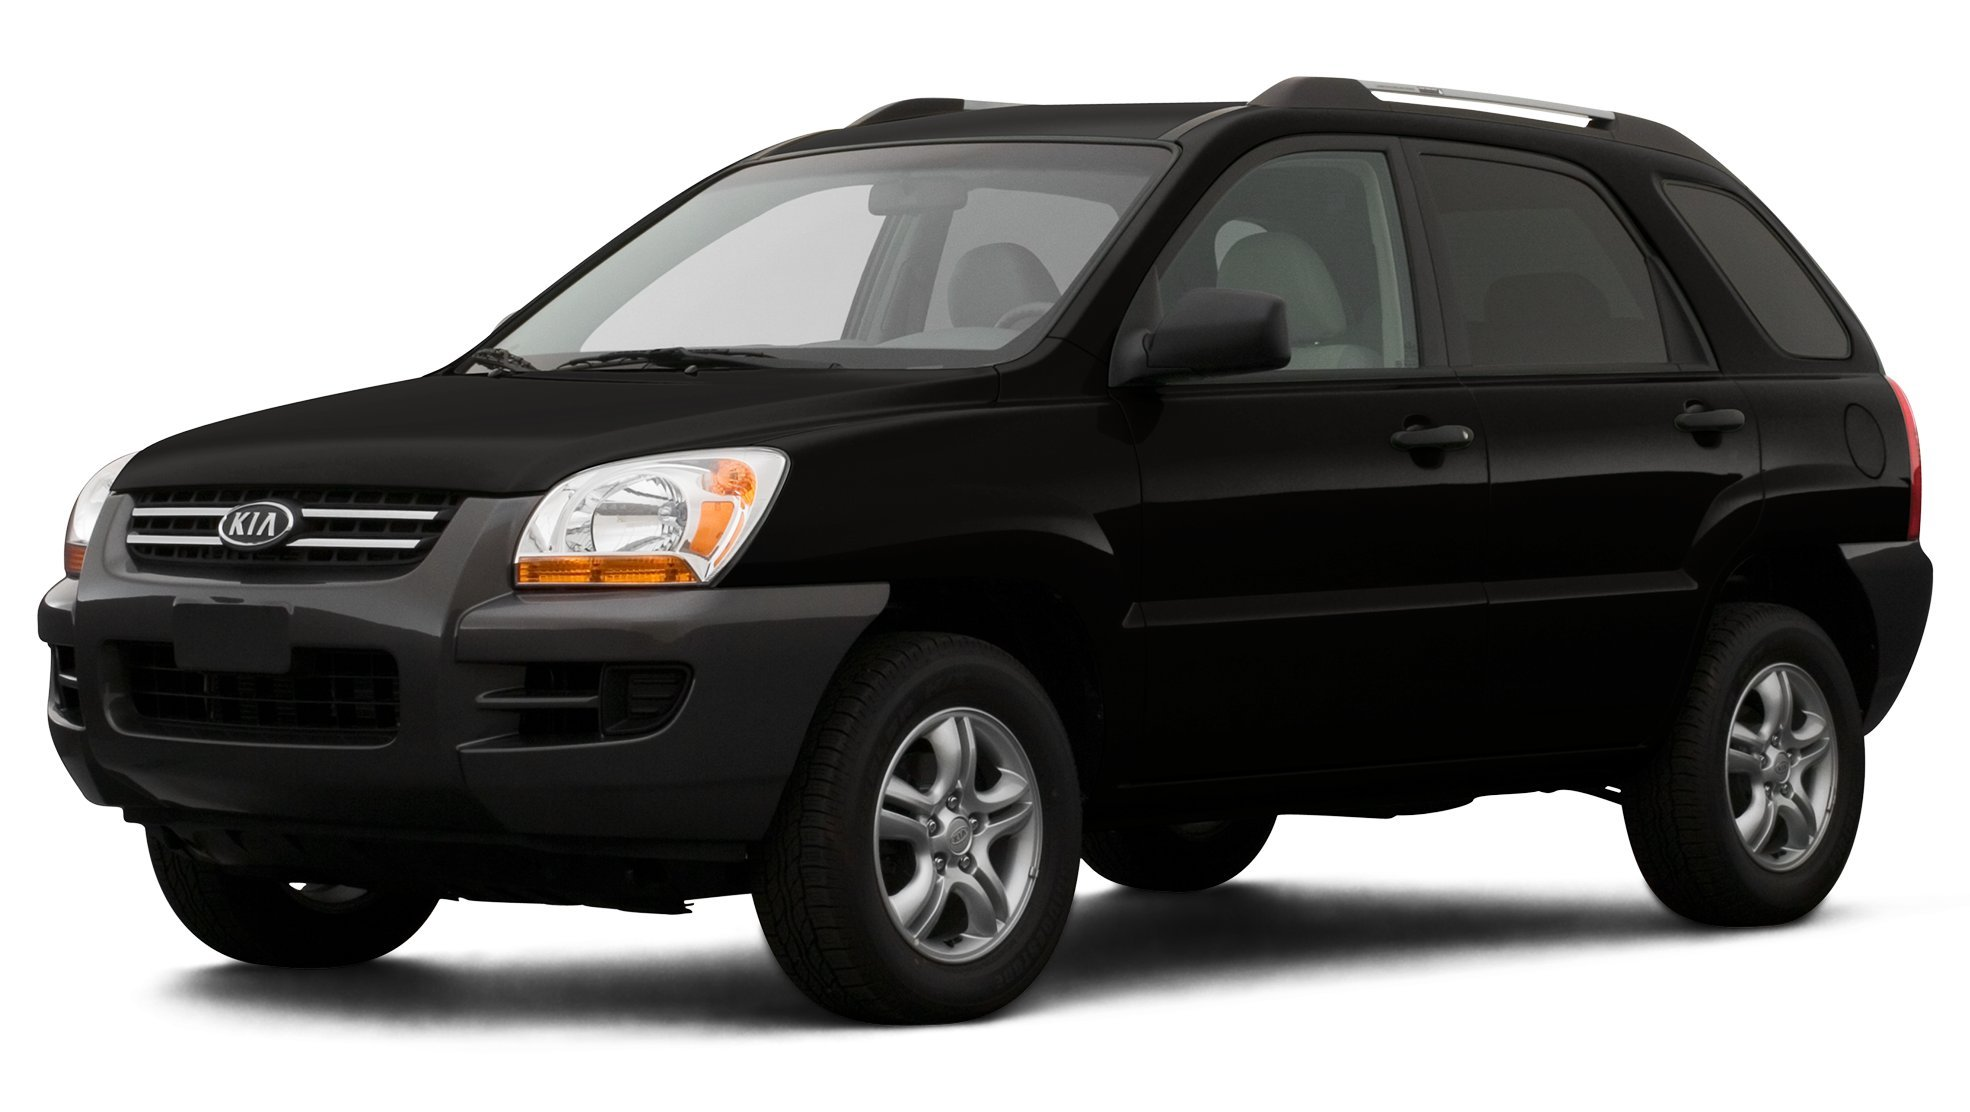 ... 2007 Kia Sportage LX, 2-Wheel Drive 4-Door 4-Cylinder Manual ...